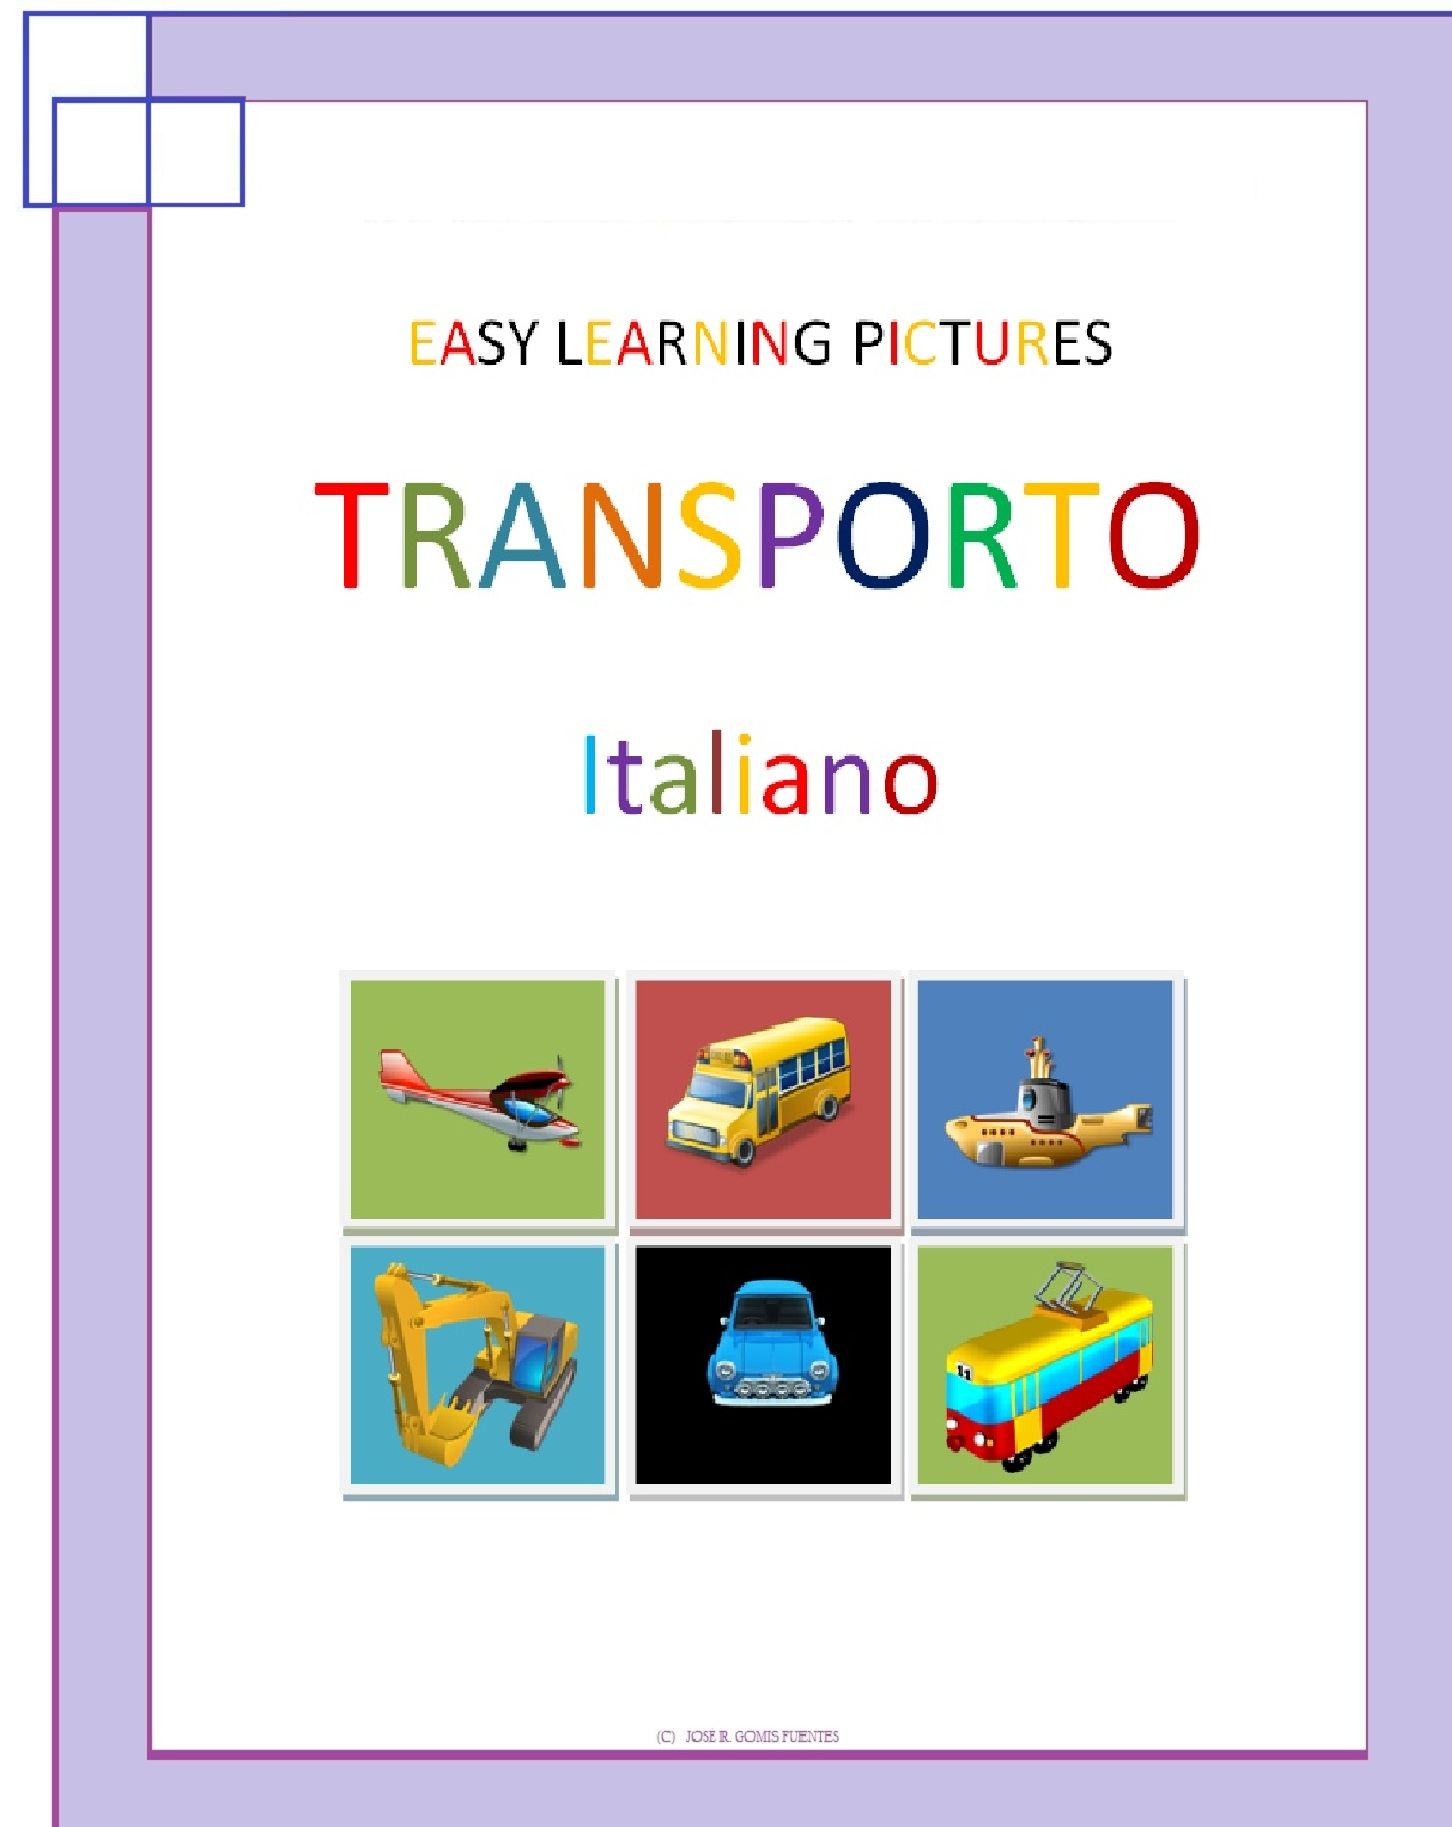 Jose Remigio Gomis Fuentes - Easy Learning Pictures. Transporto.